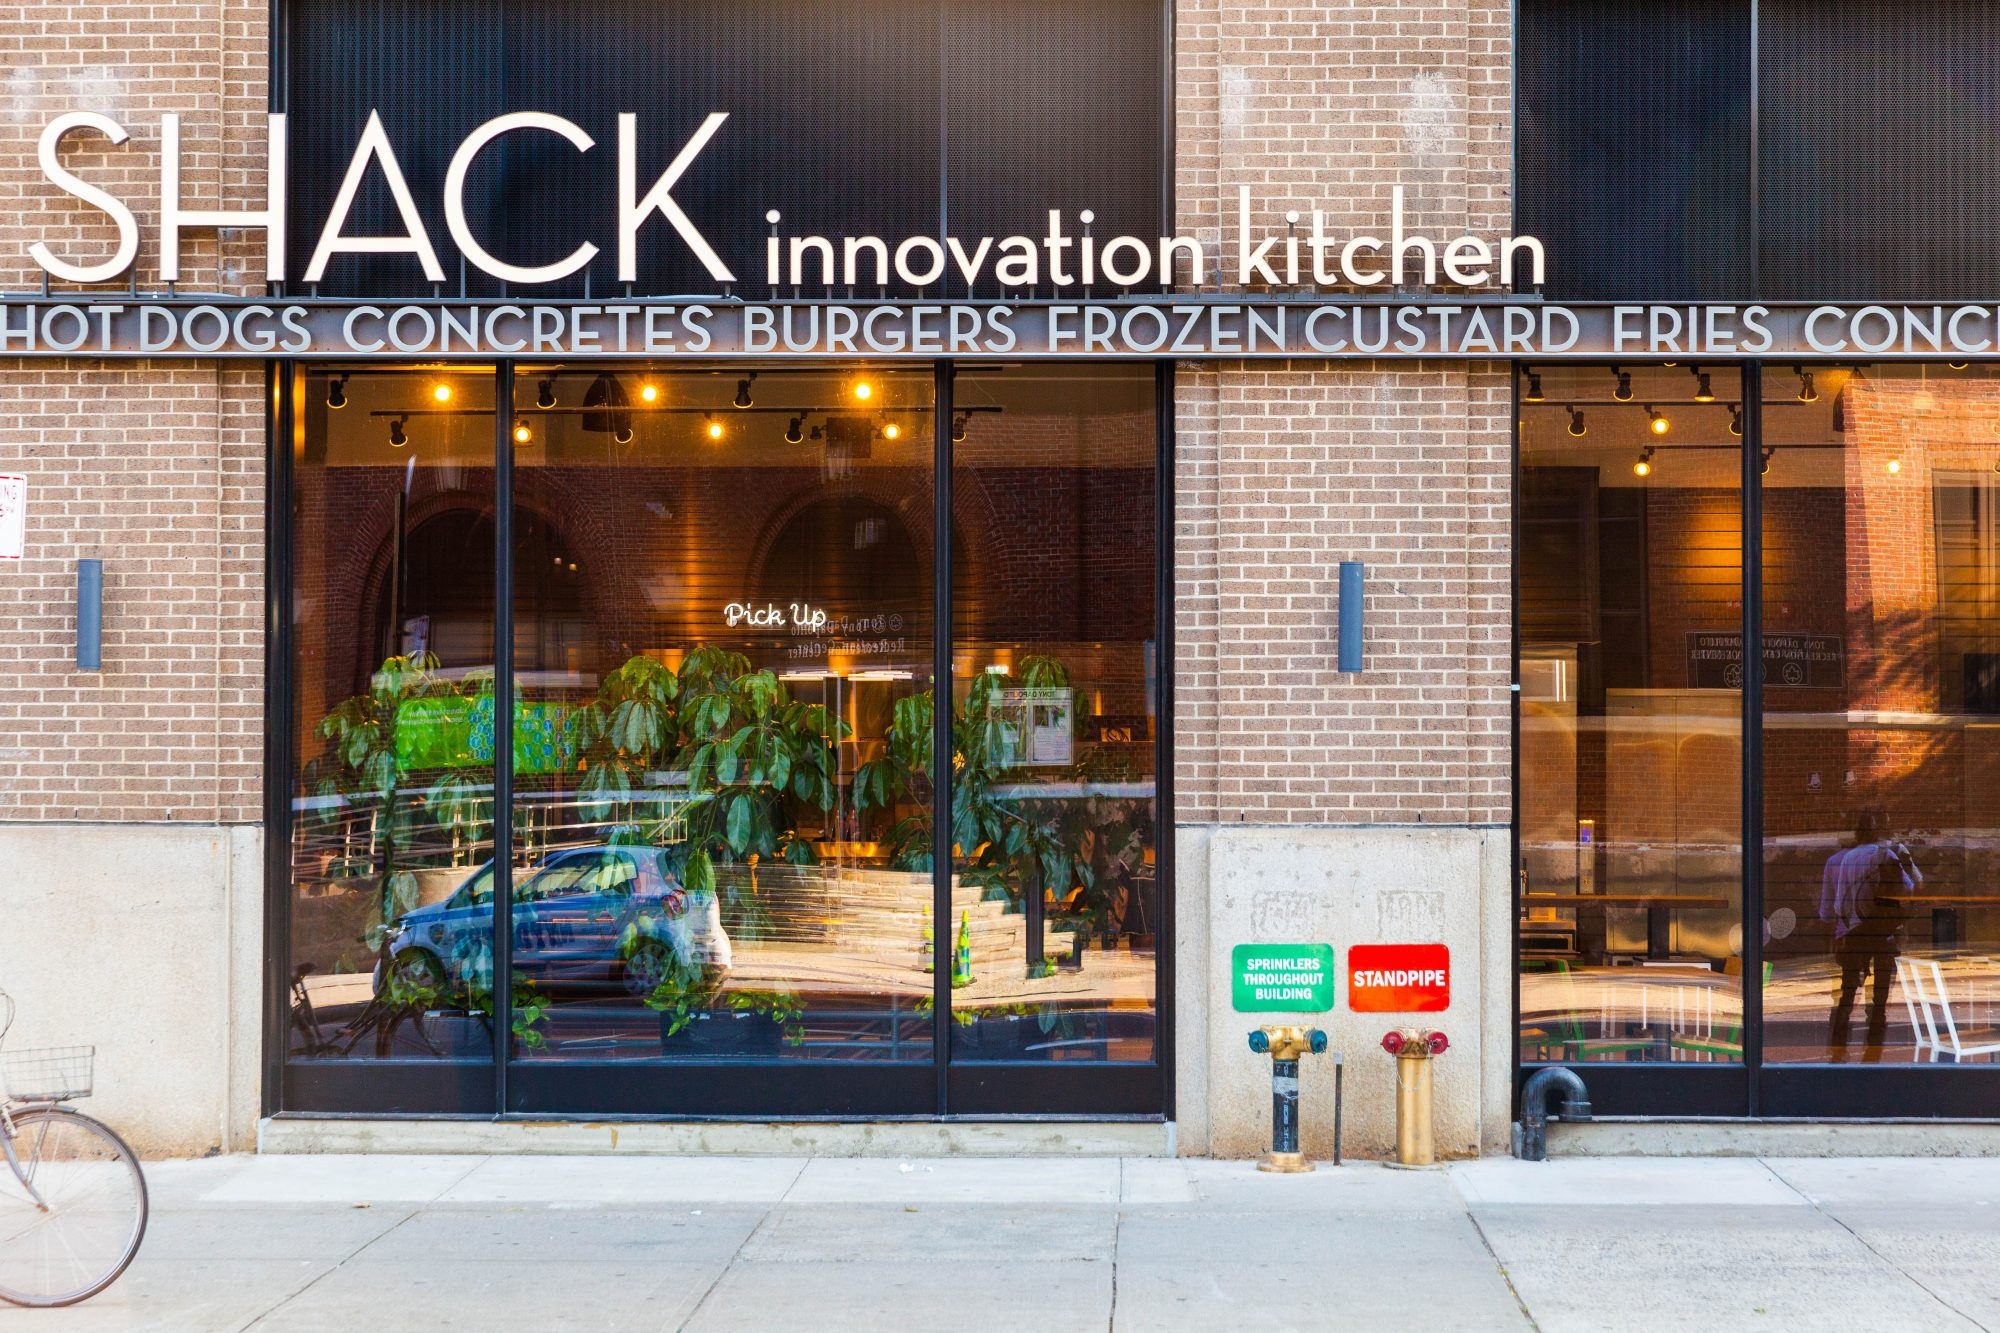 Shake Shack's New Innovation Kitchen Will Launch Chick'n Bites